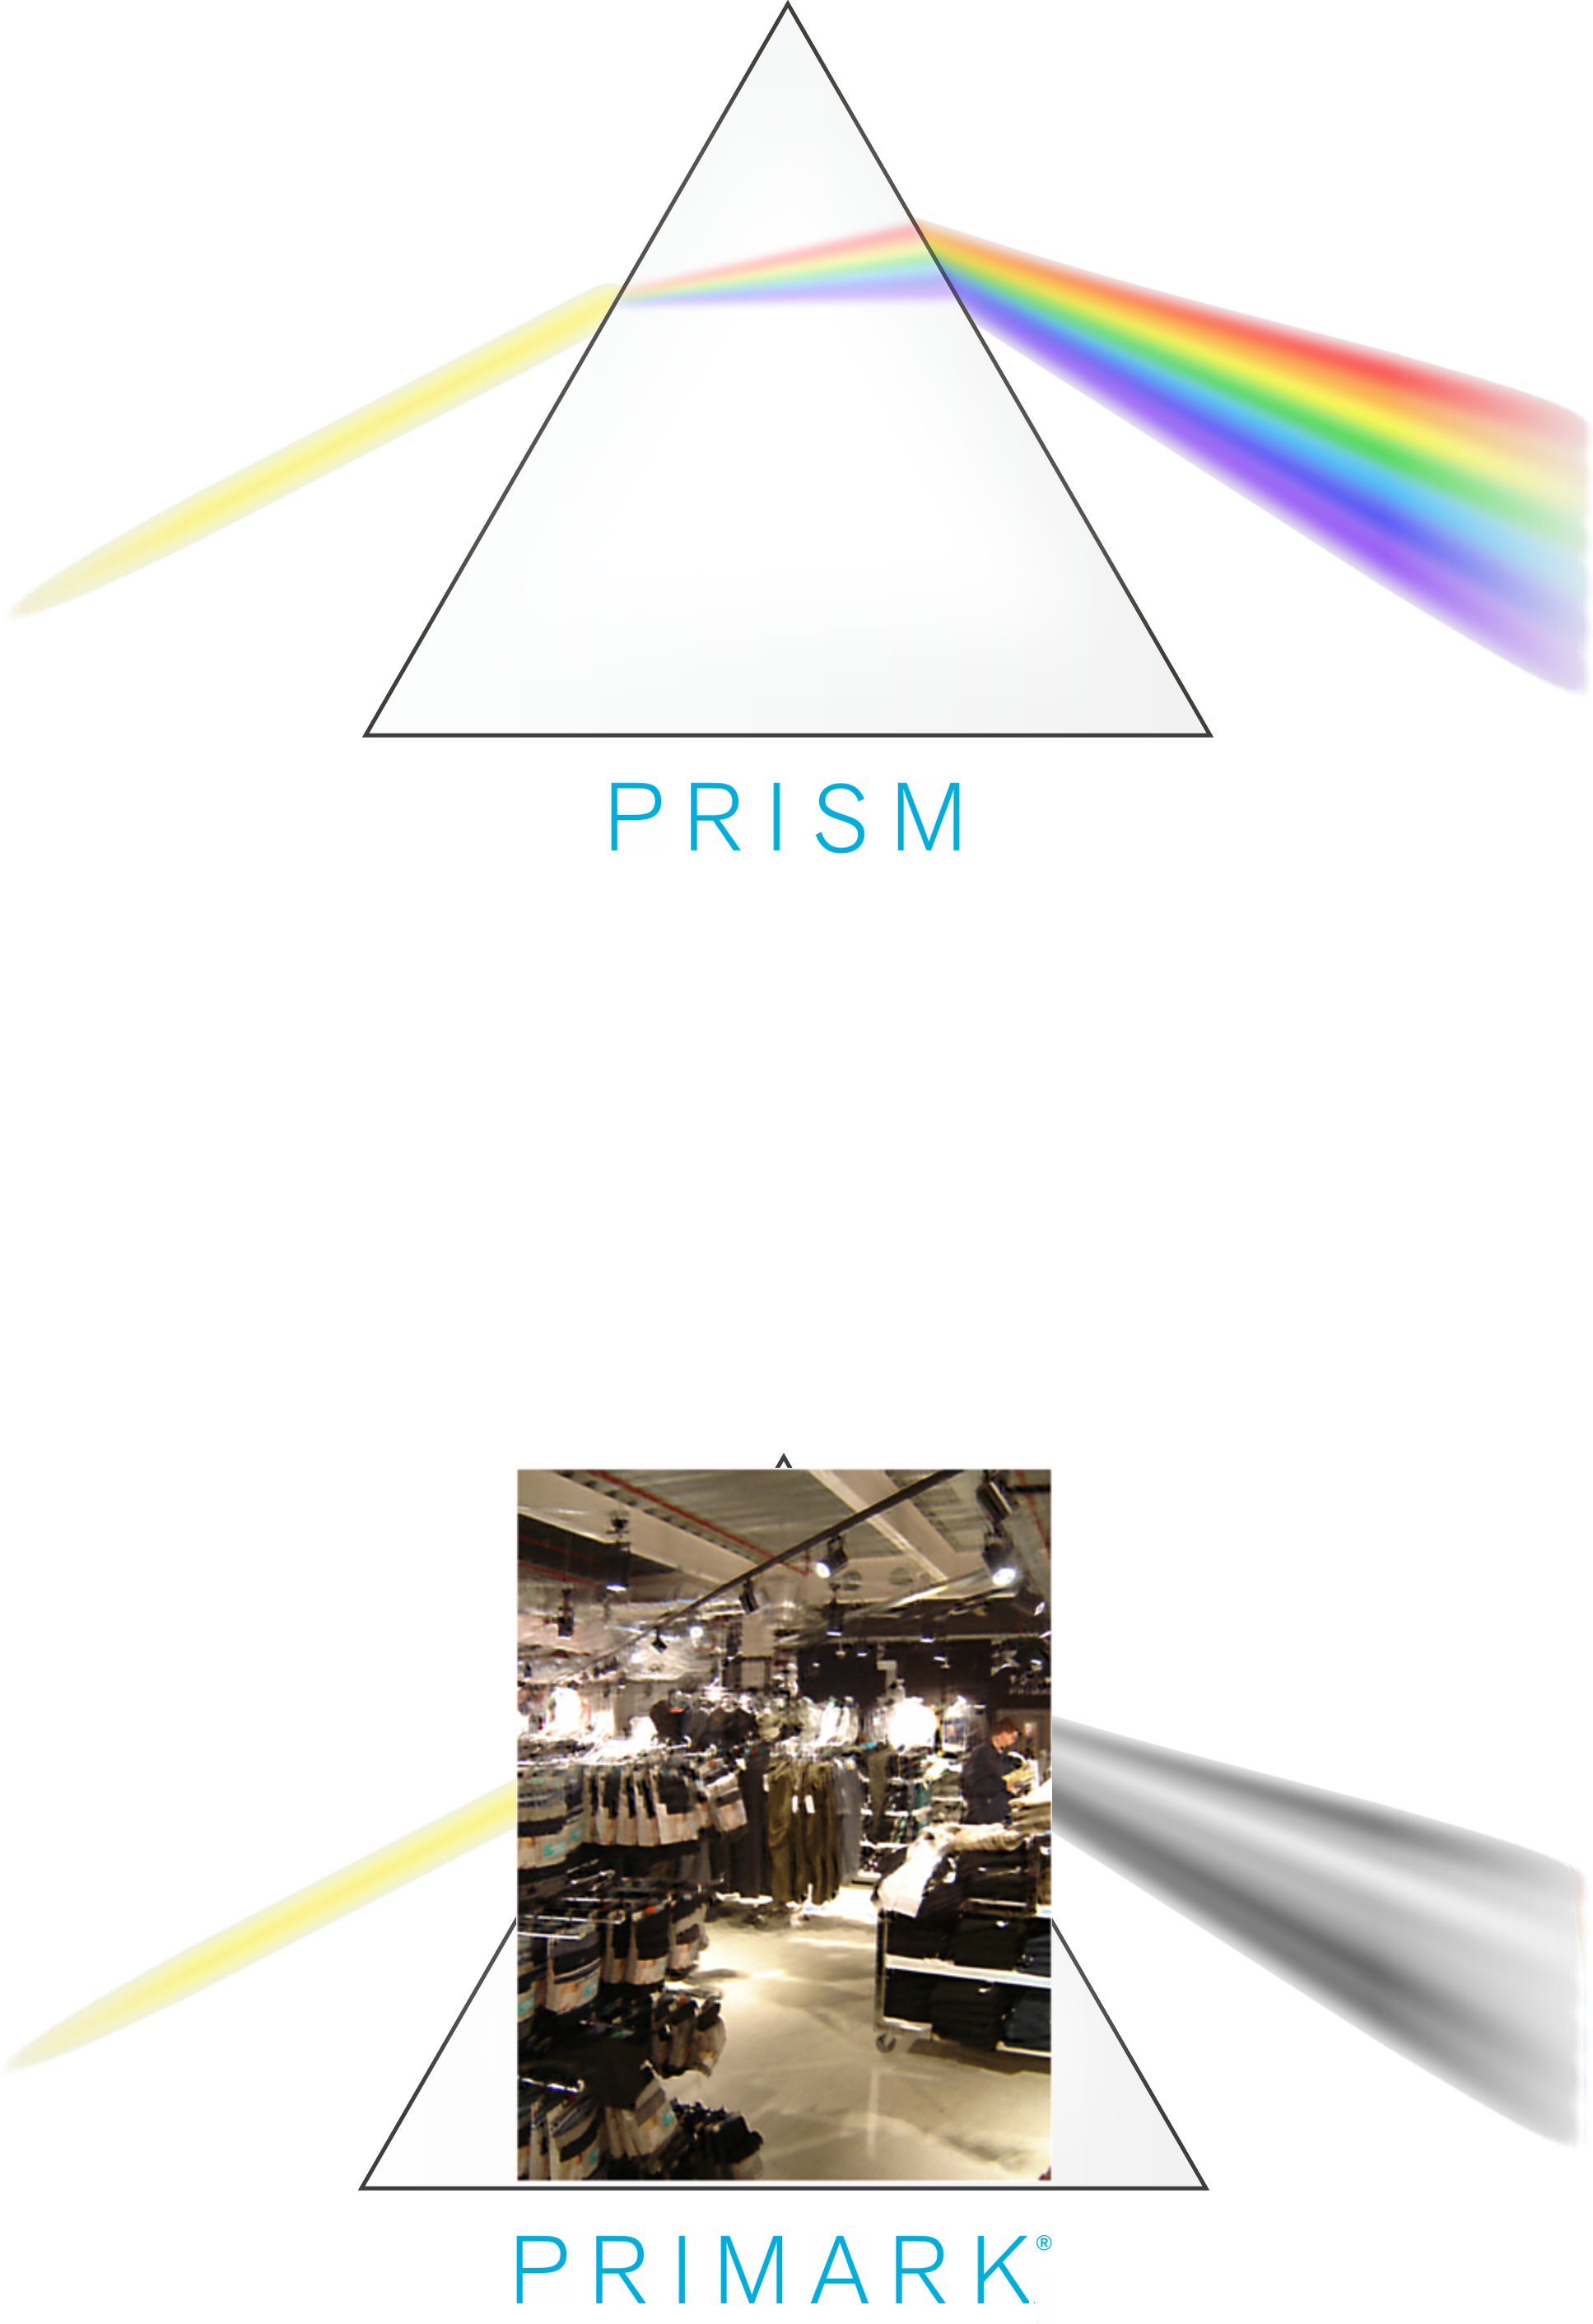 Two pictures in one image. The first is a prism with light going through and forming a spectrum, labelled 'PRISM'. The second is the same prism with an interior photo of the Oxford Westgate Primark shop superimposed. It is labelled 'PRIMARK'. The light coming out is the same spectrum as for the first prism, but grey, not coloured.